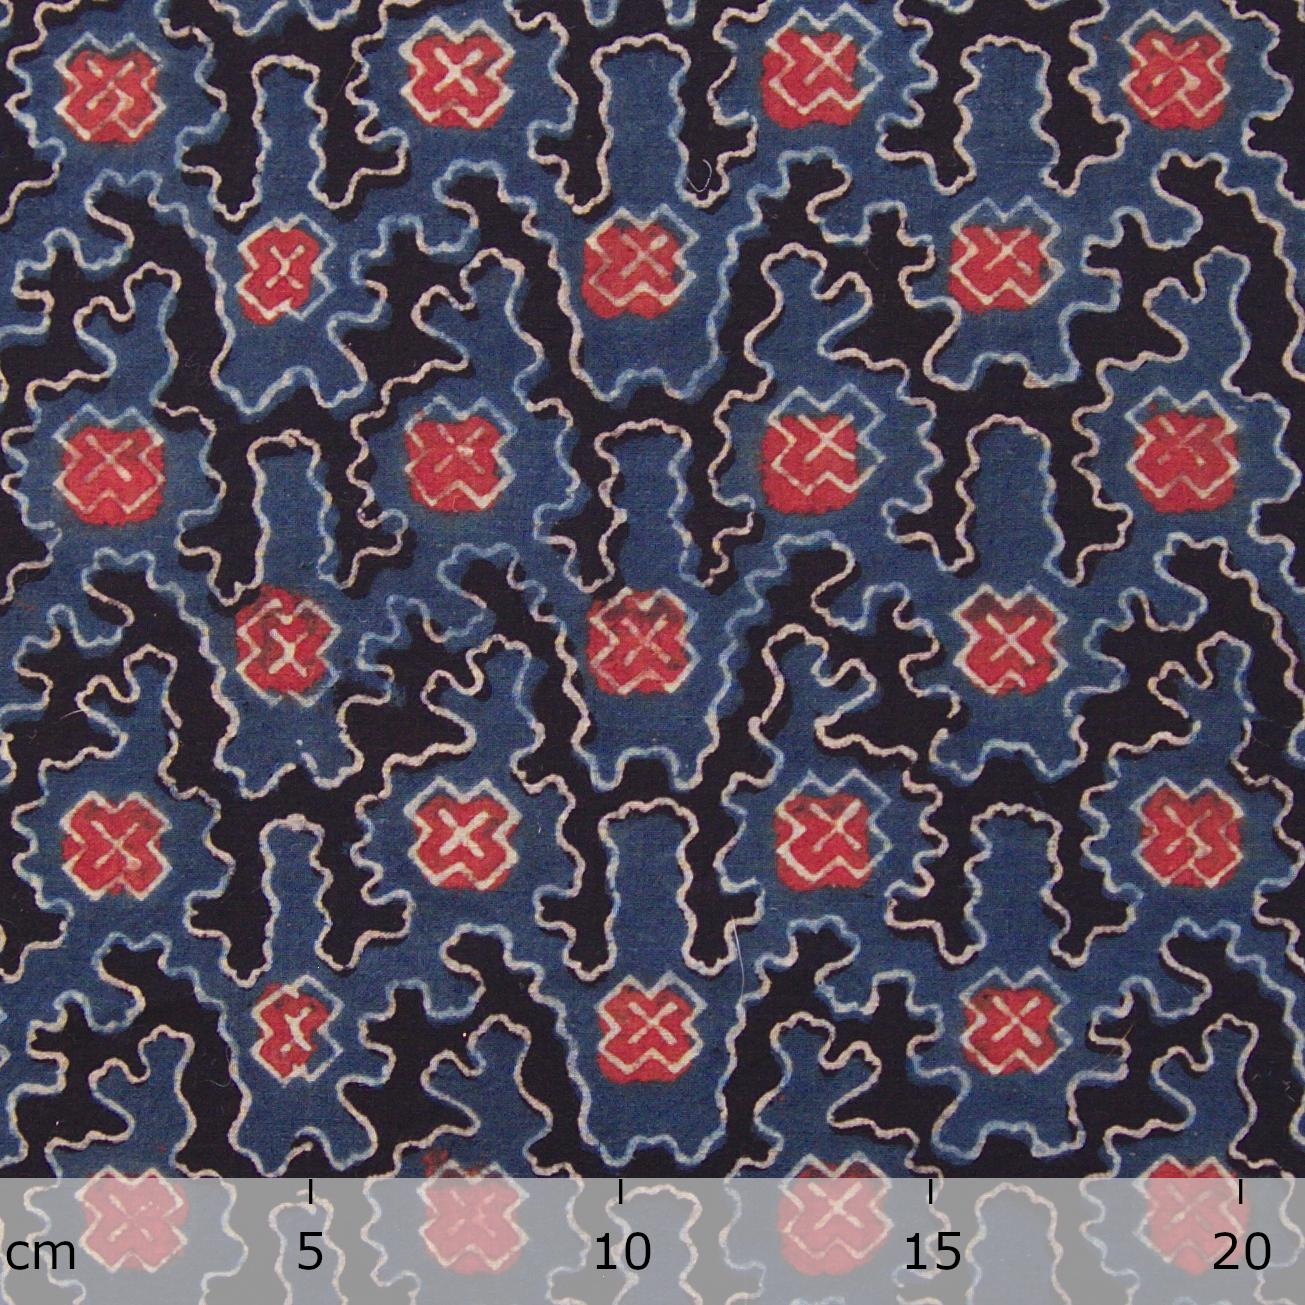 Block Printed Fabric, 100% Cotton, Ajrak Design: Indigo Blue Base, Black, Madder Red, White Cloud. Ruler